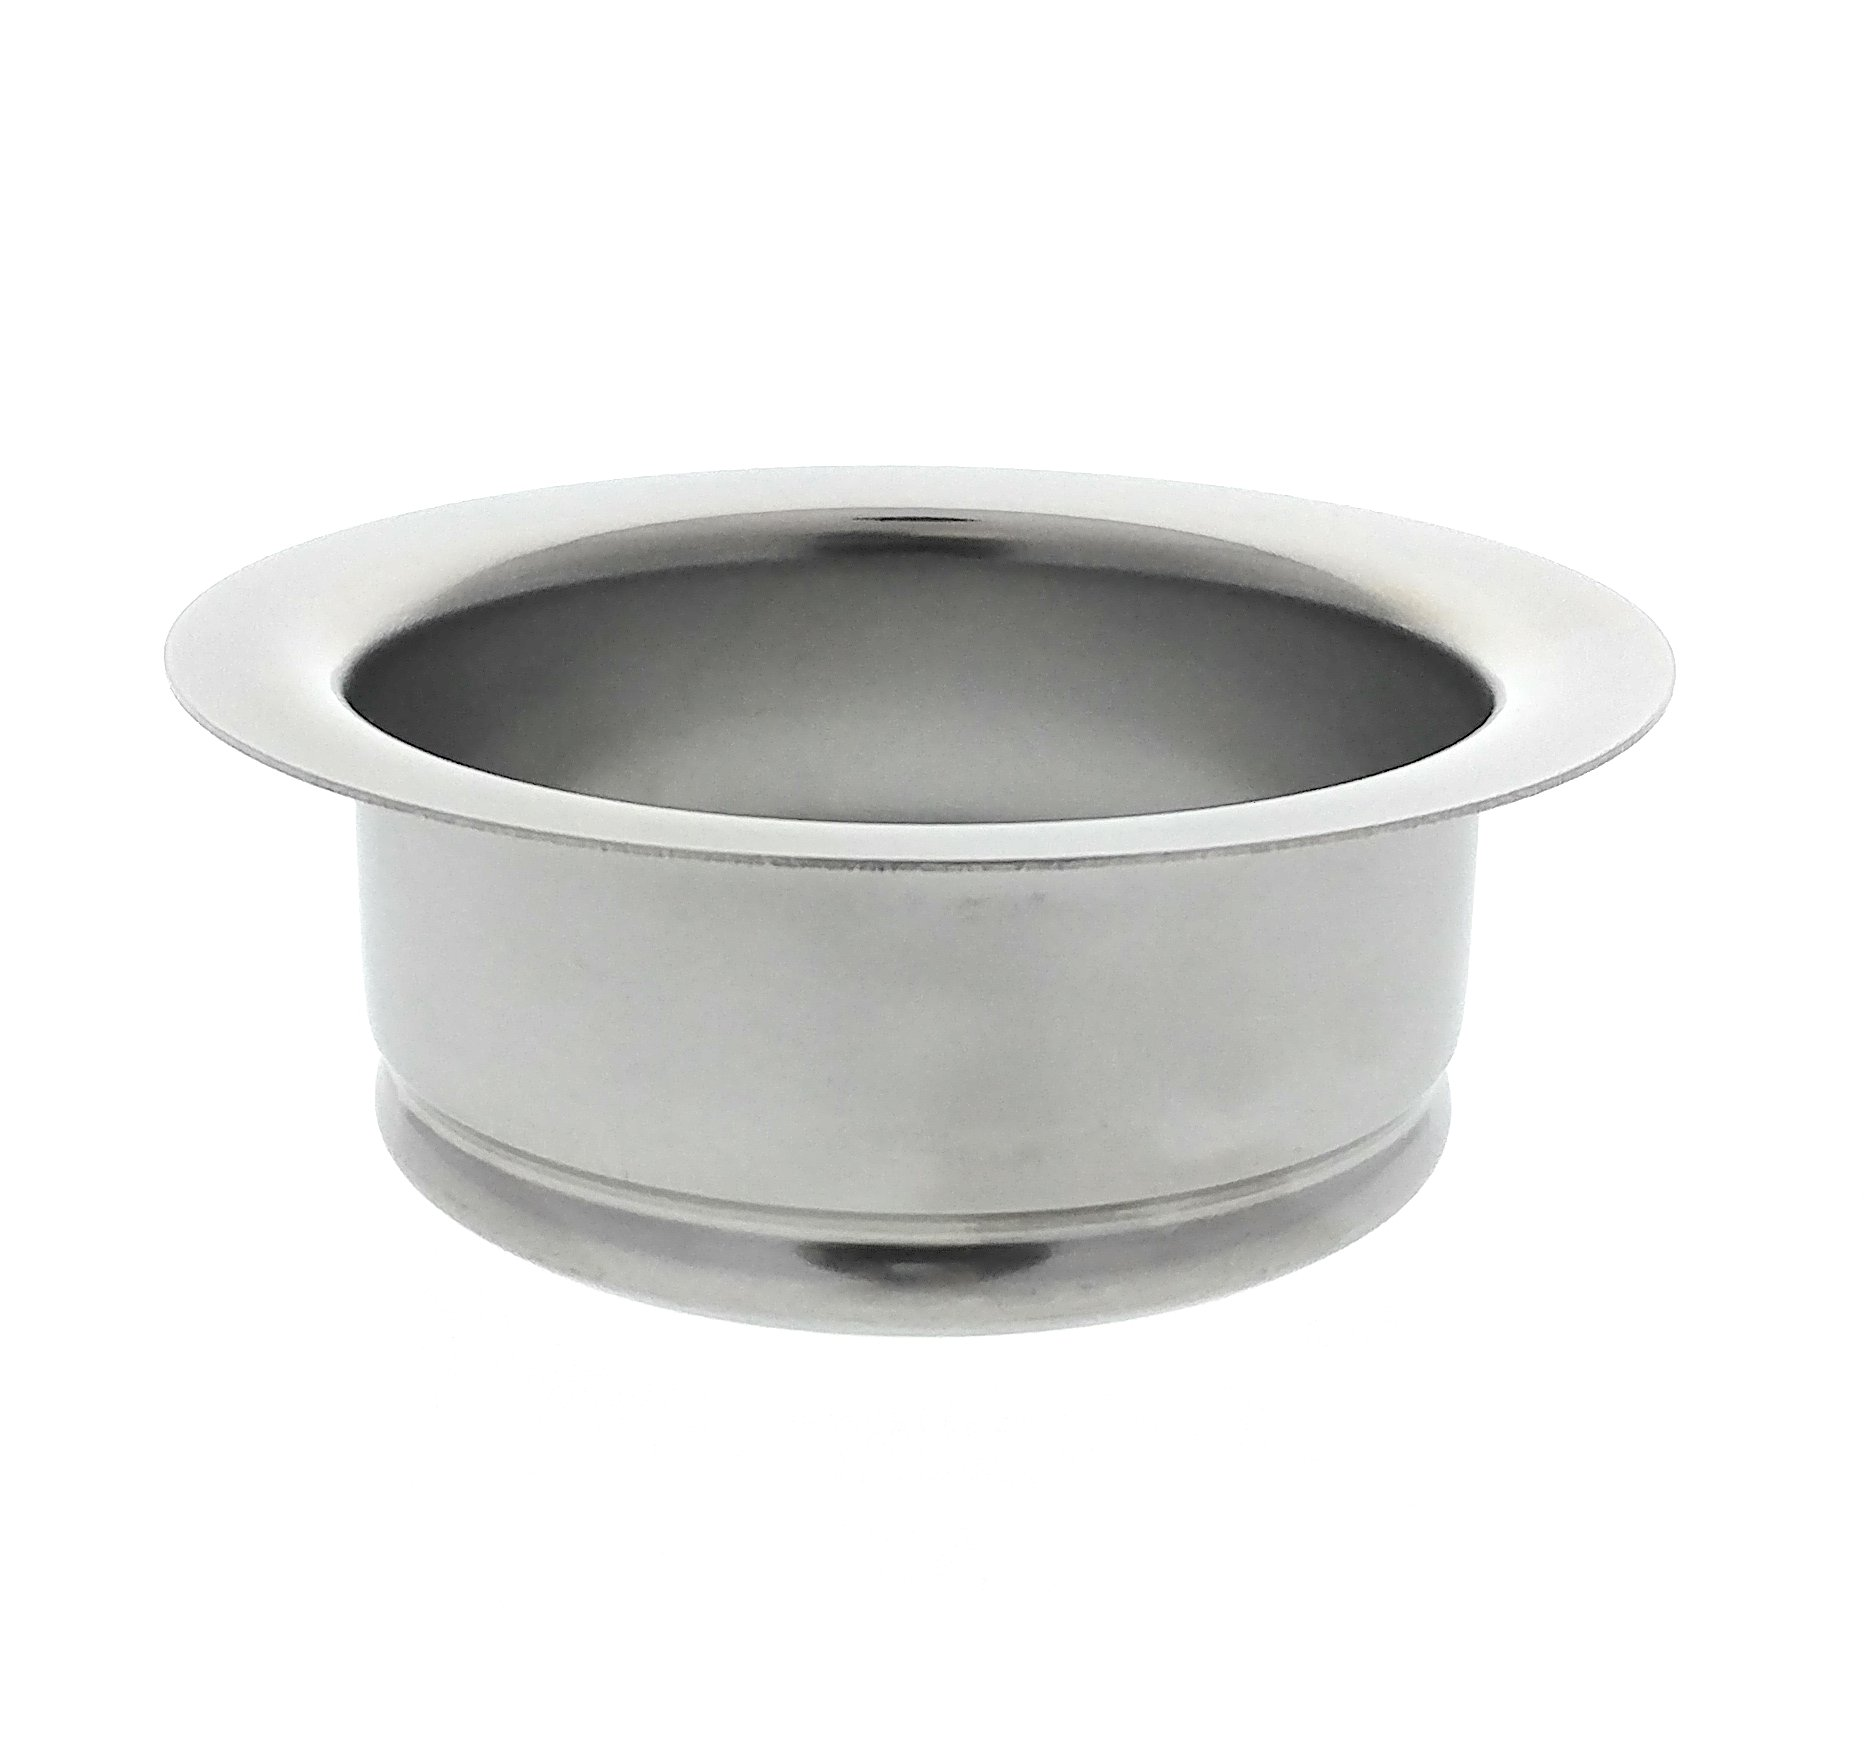 Kitchen Sink Flange, Stainless Steel Flange For Insinkerator Garbage Disposals And Other Disposers That Use A 3 Bolt Mount, By Essential Values by Essential Values